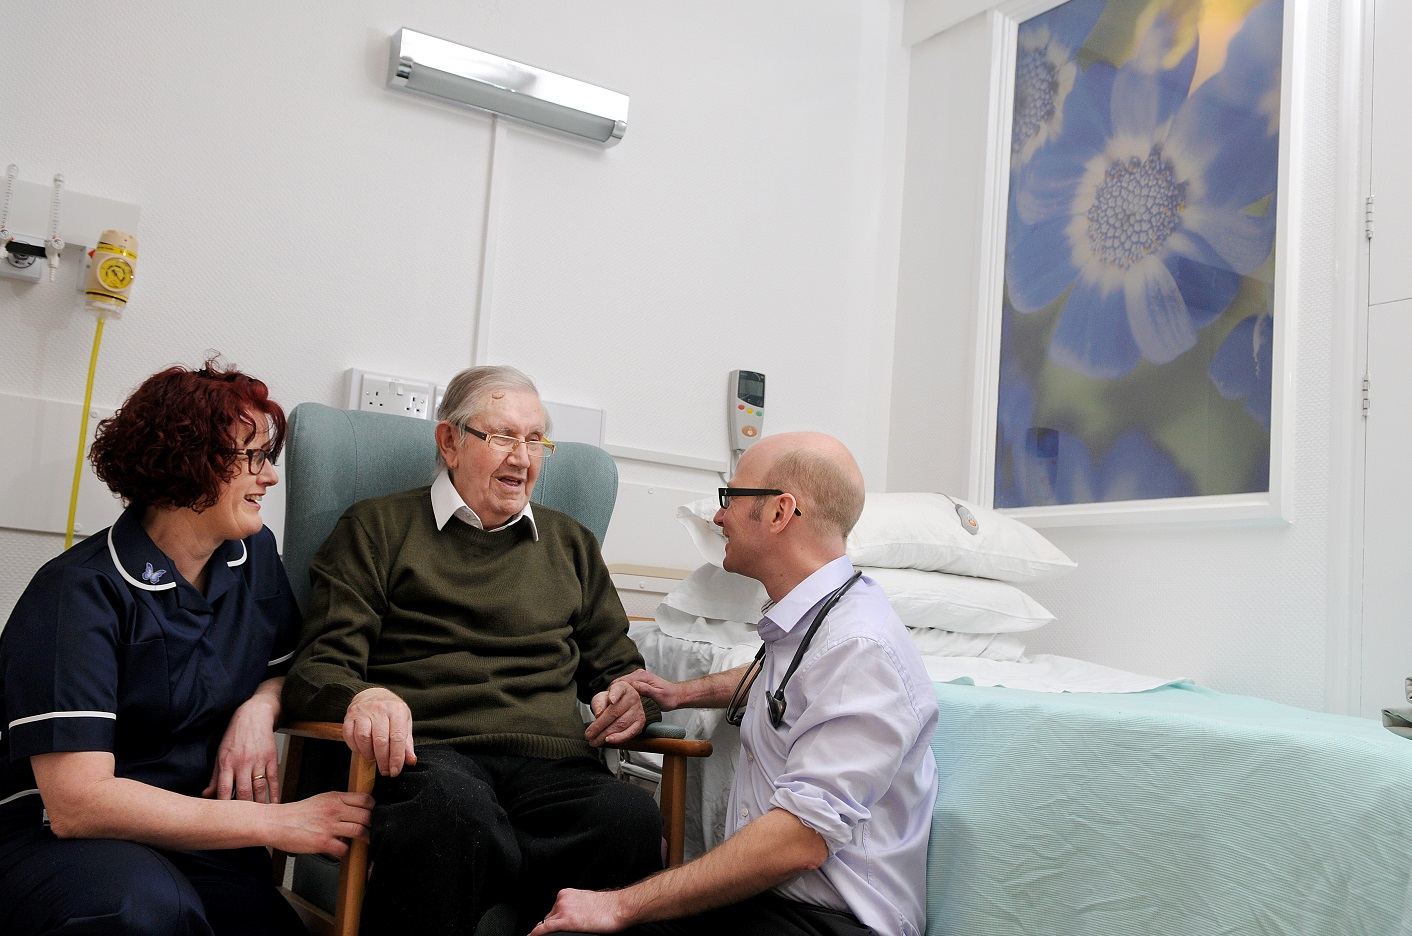 Ward sister Sarah Robinson with patient Ronald Ford and consultant Robert Marshall